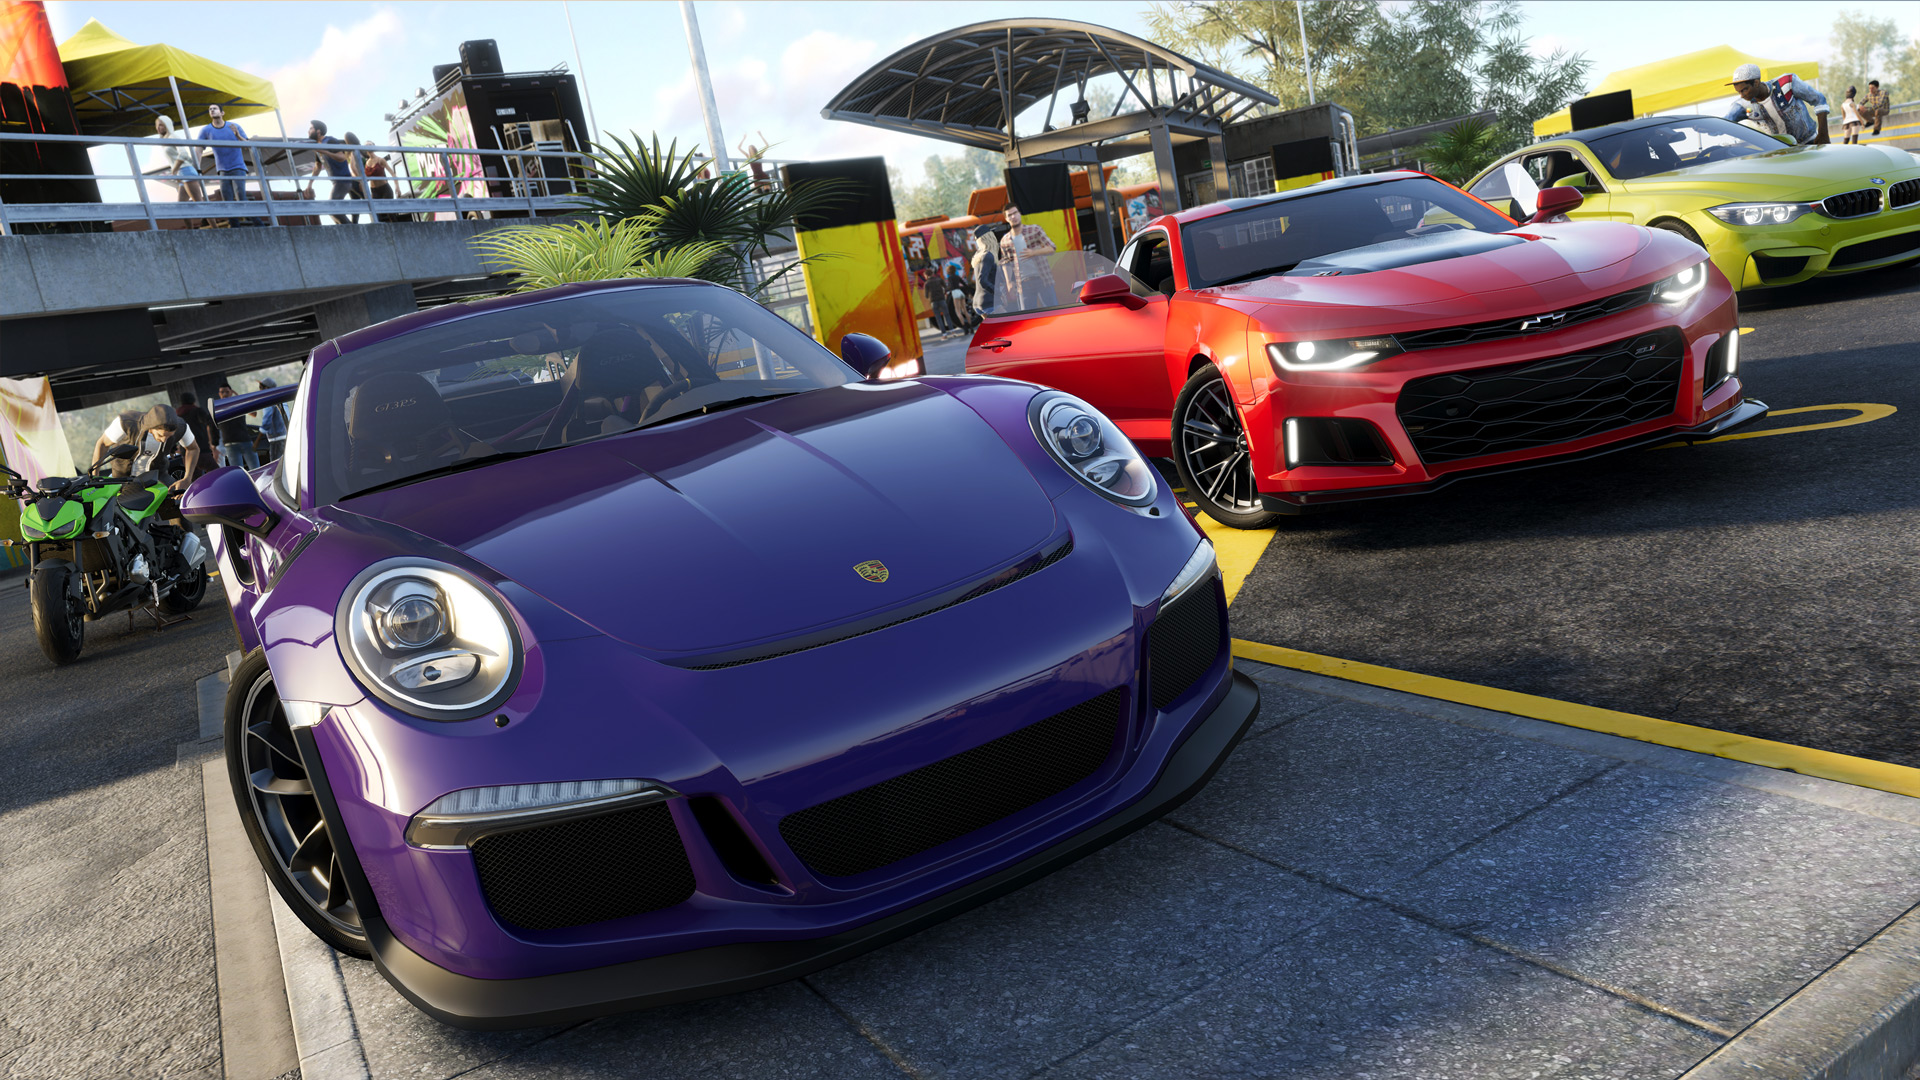 The Crew 2 Pre-order And Release Details Published